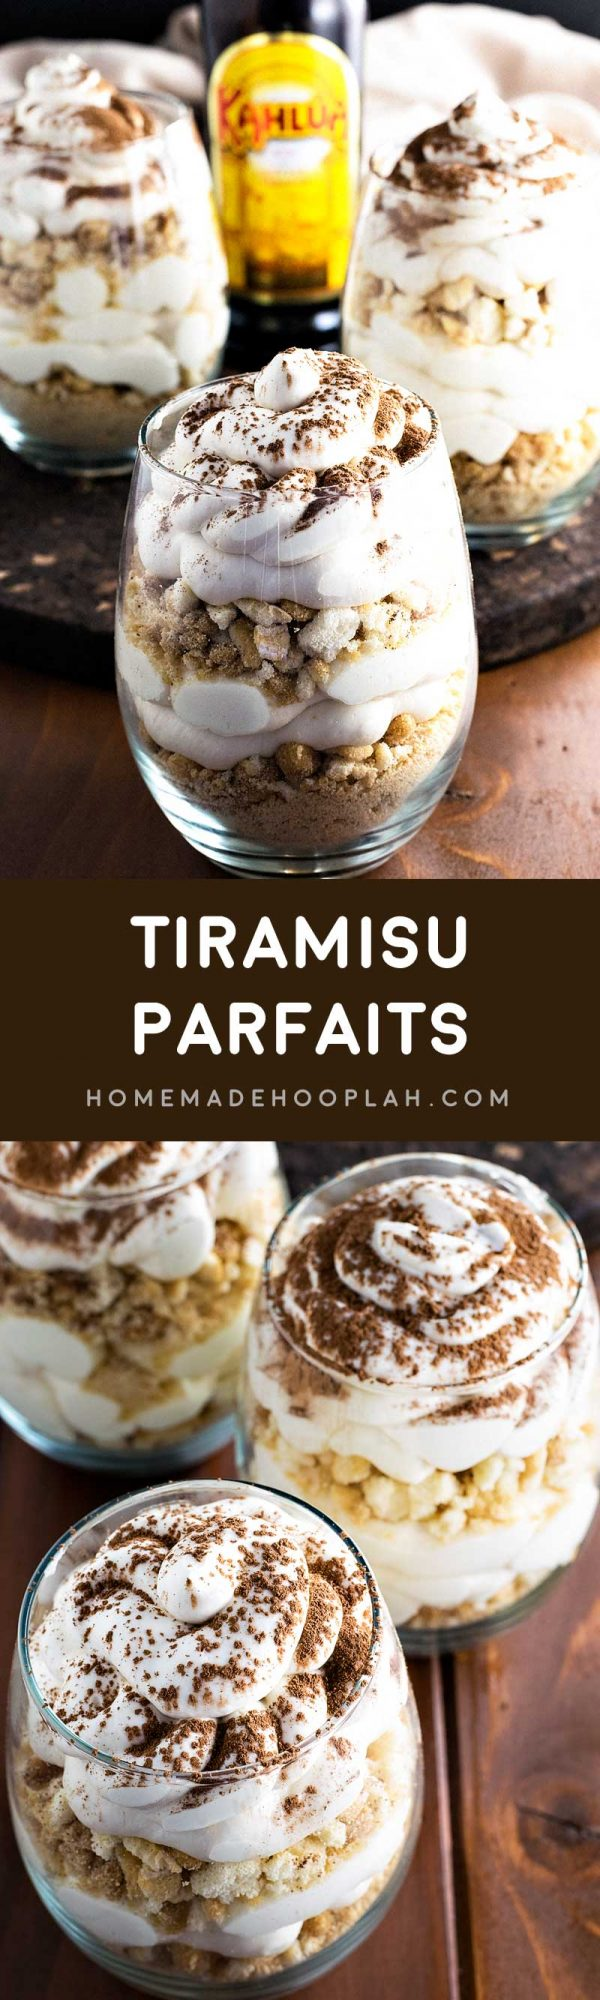 Tiramisu Parfaits! Get ready for summer with these tiramisu parfaits! Sweet mascarpone cheese spiked with Kahlua and layered with coffee syrup infused ladyfinger crumbles. | HomemadeHooplah.com